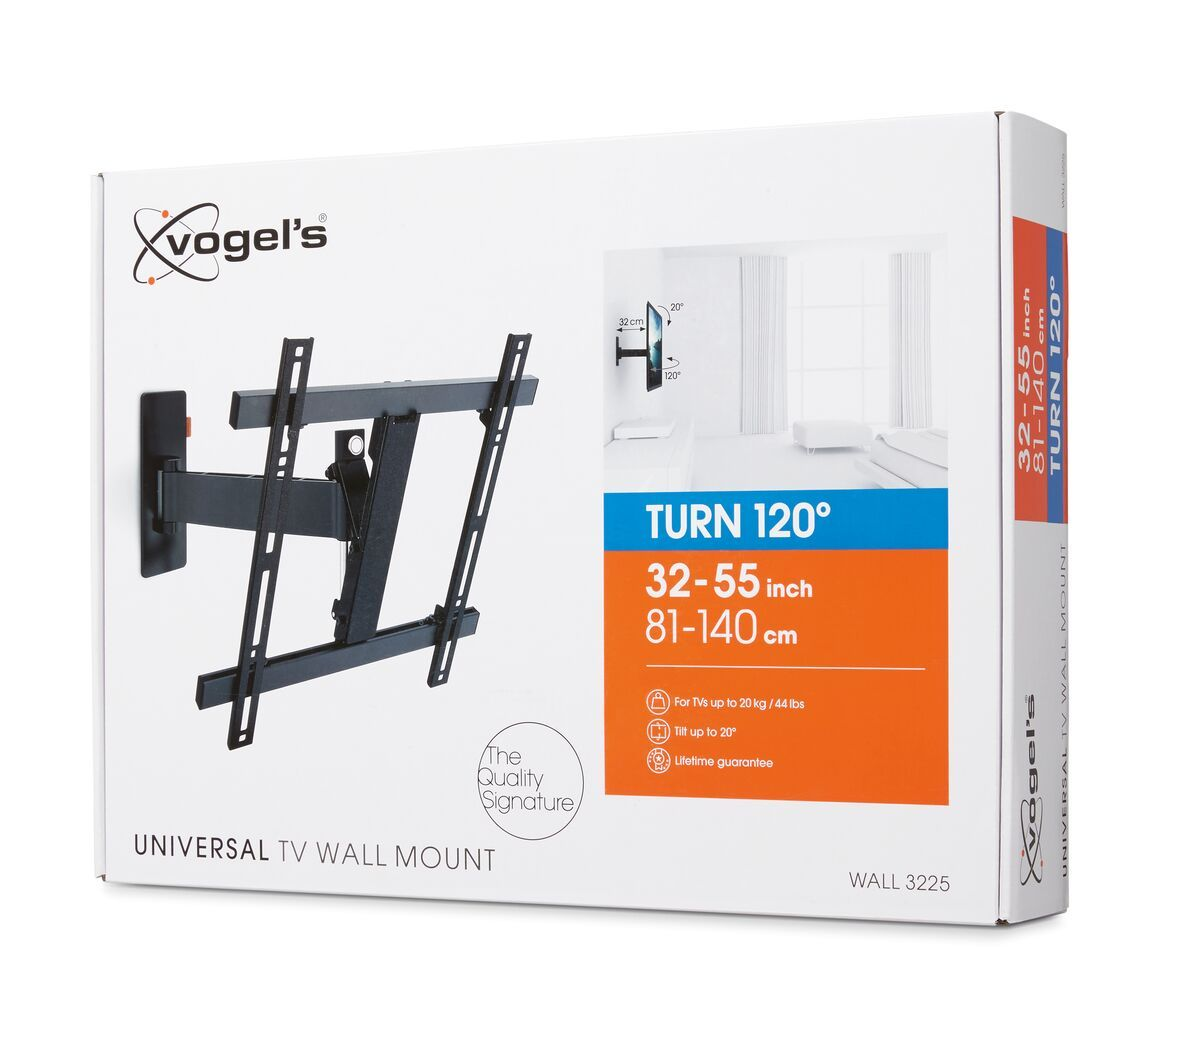 Vogel's WALL 3225 Full-Motion TV Wall Mount - Suitable for 32 up to 55 inch TVs - Motion (up to 120°) - Tilt up to 20° - Pack shot 3D